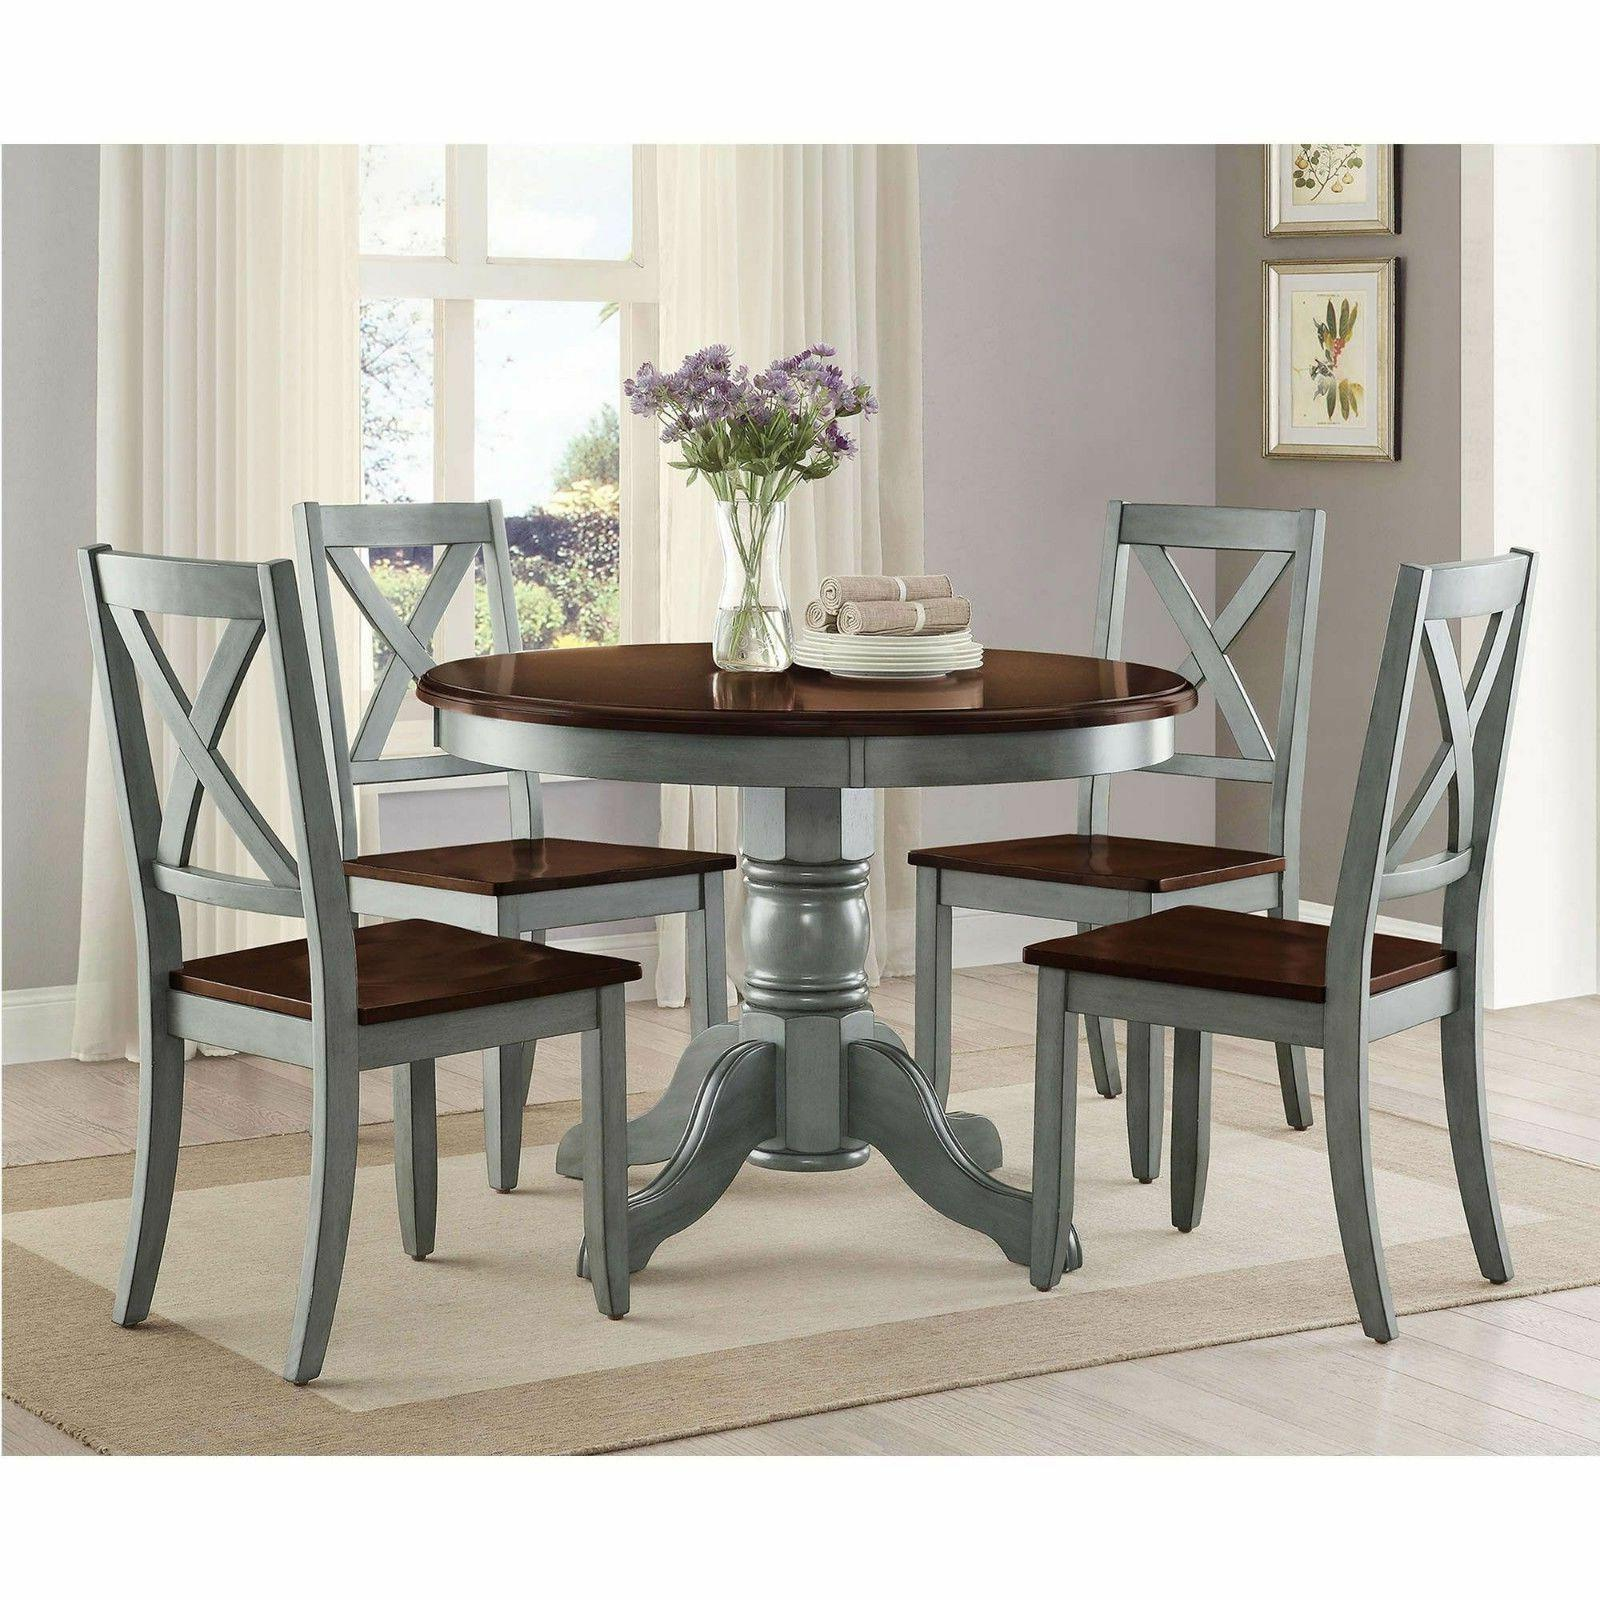 5 piece dining room set rustic round